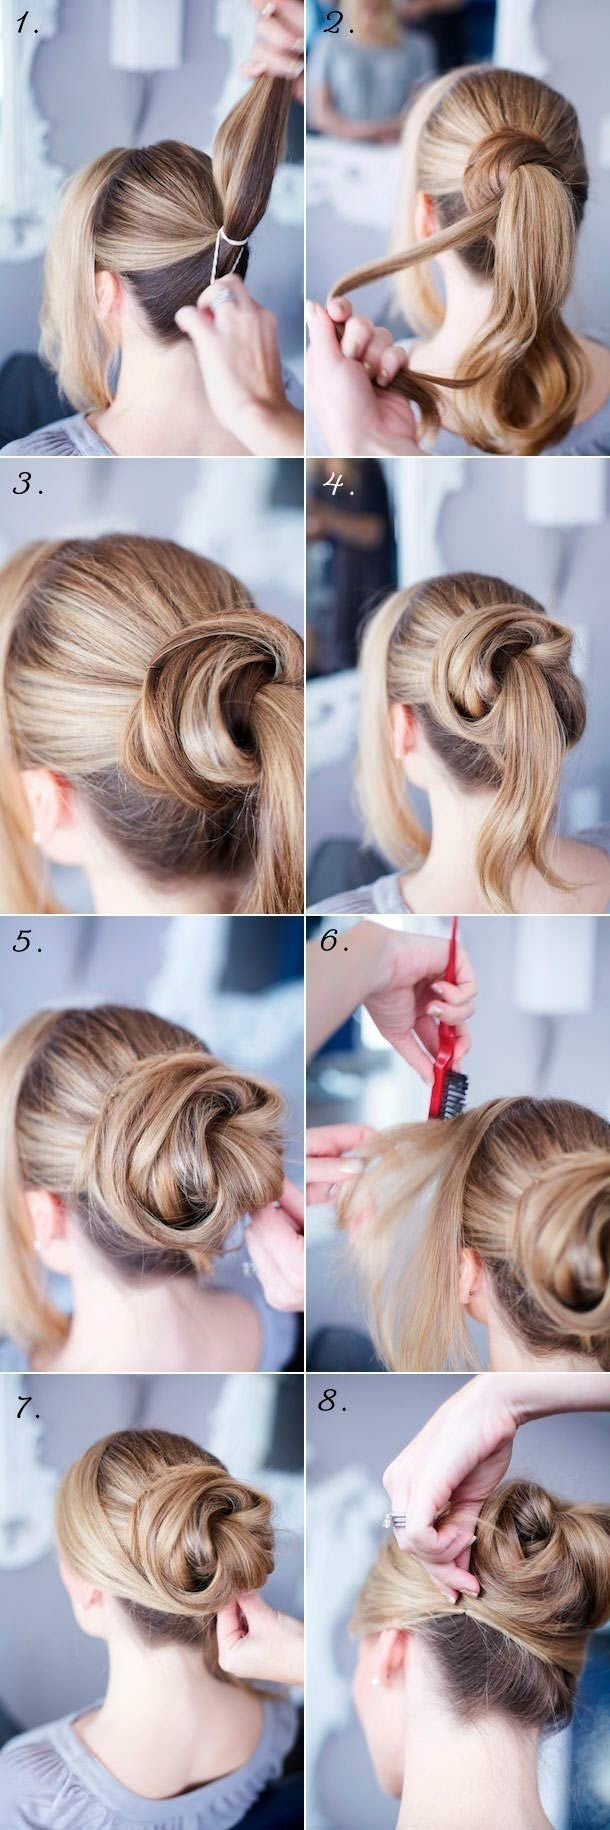 Nice updo tutorial for long hair